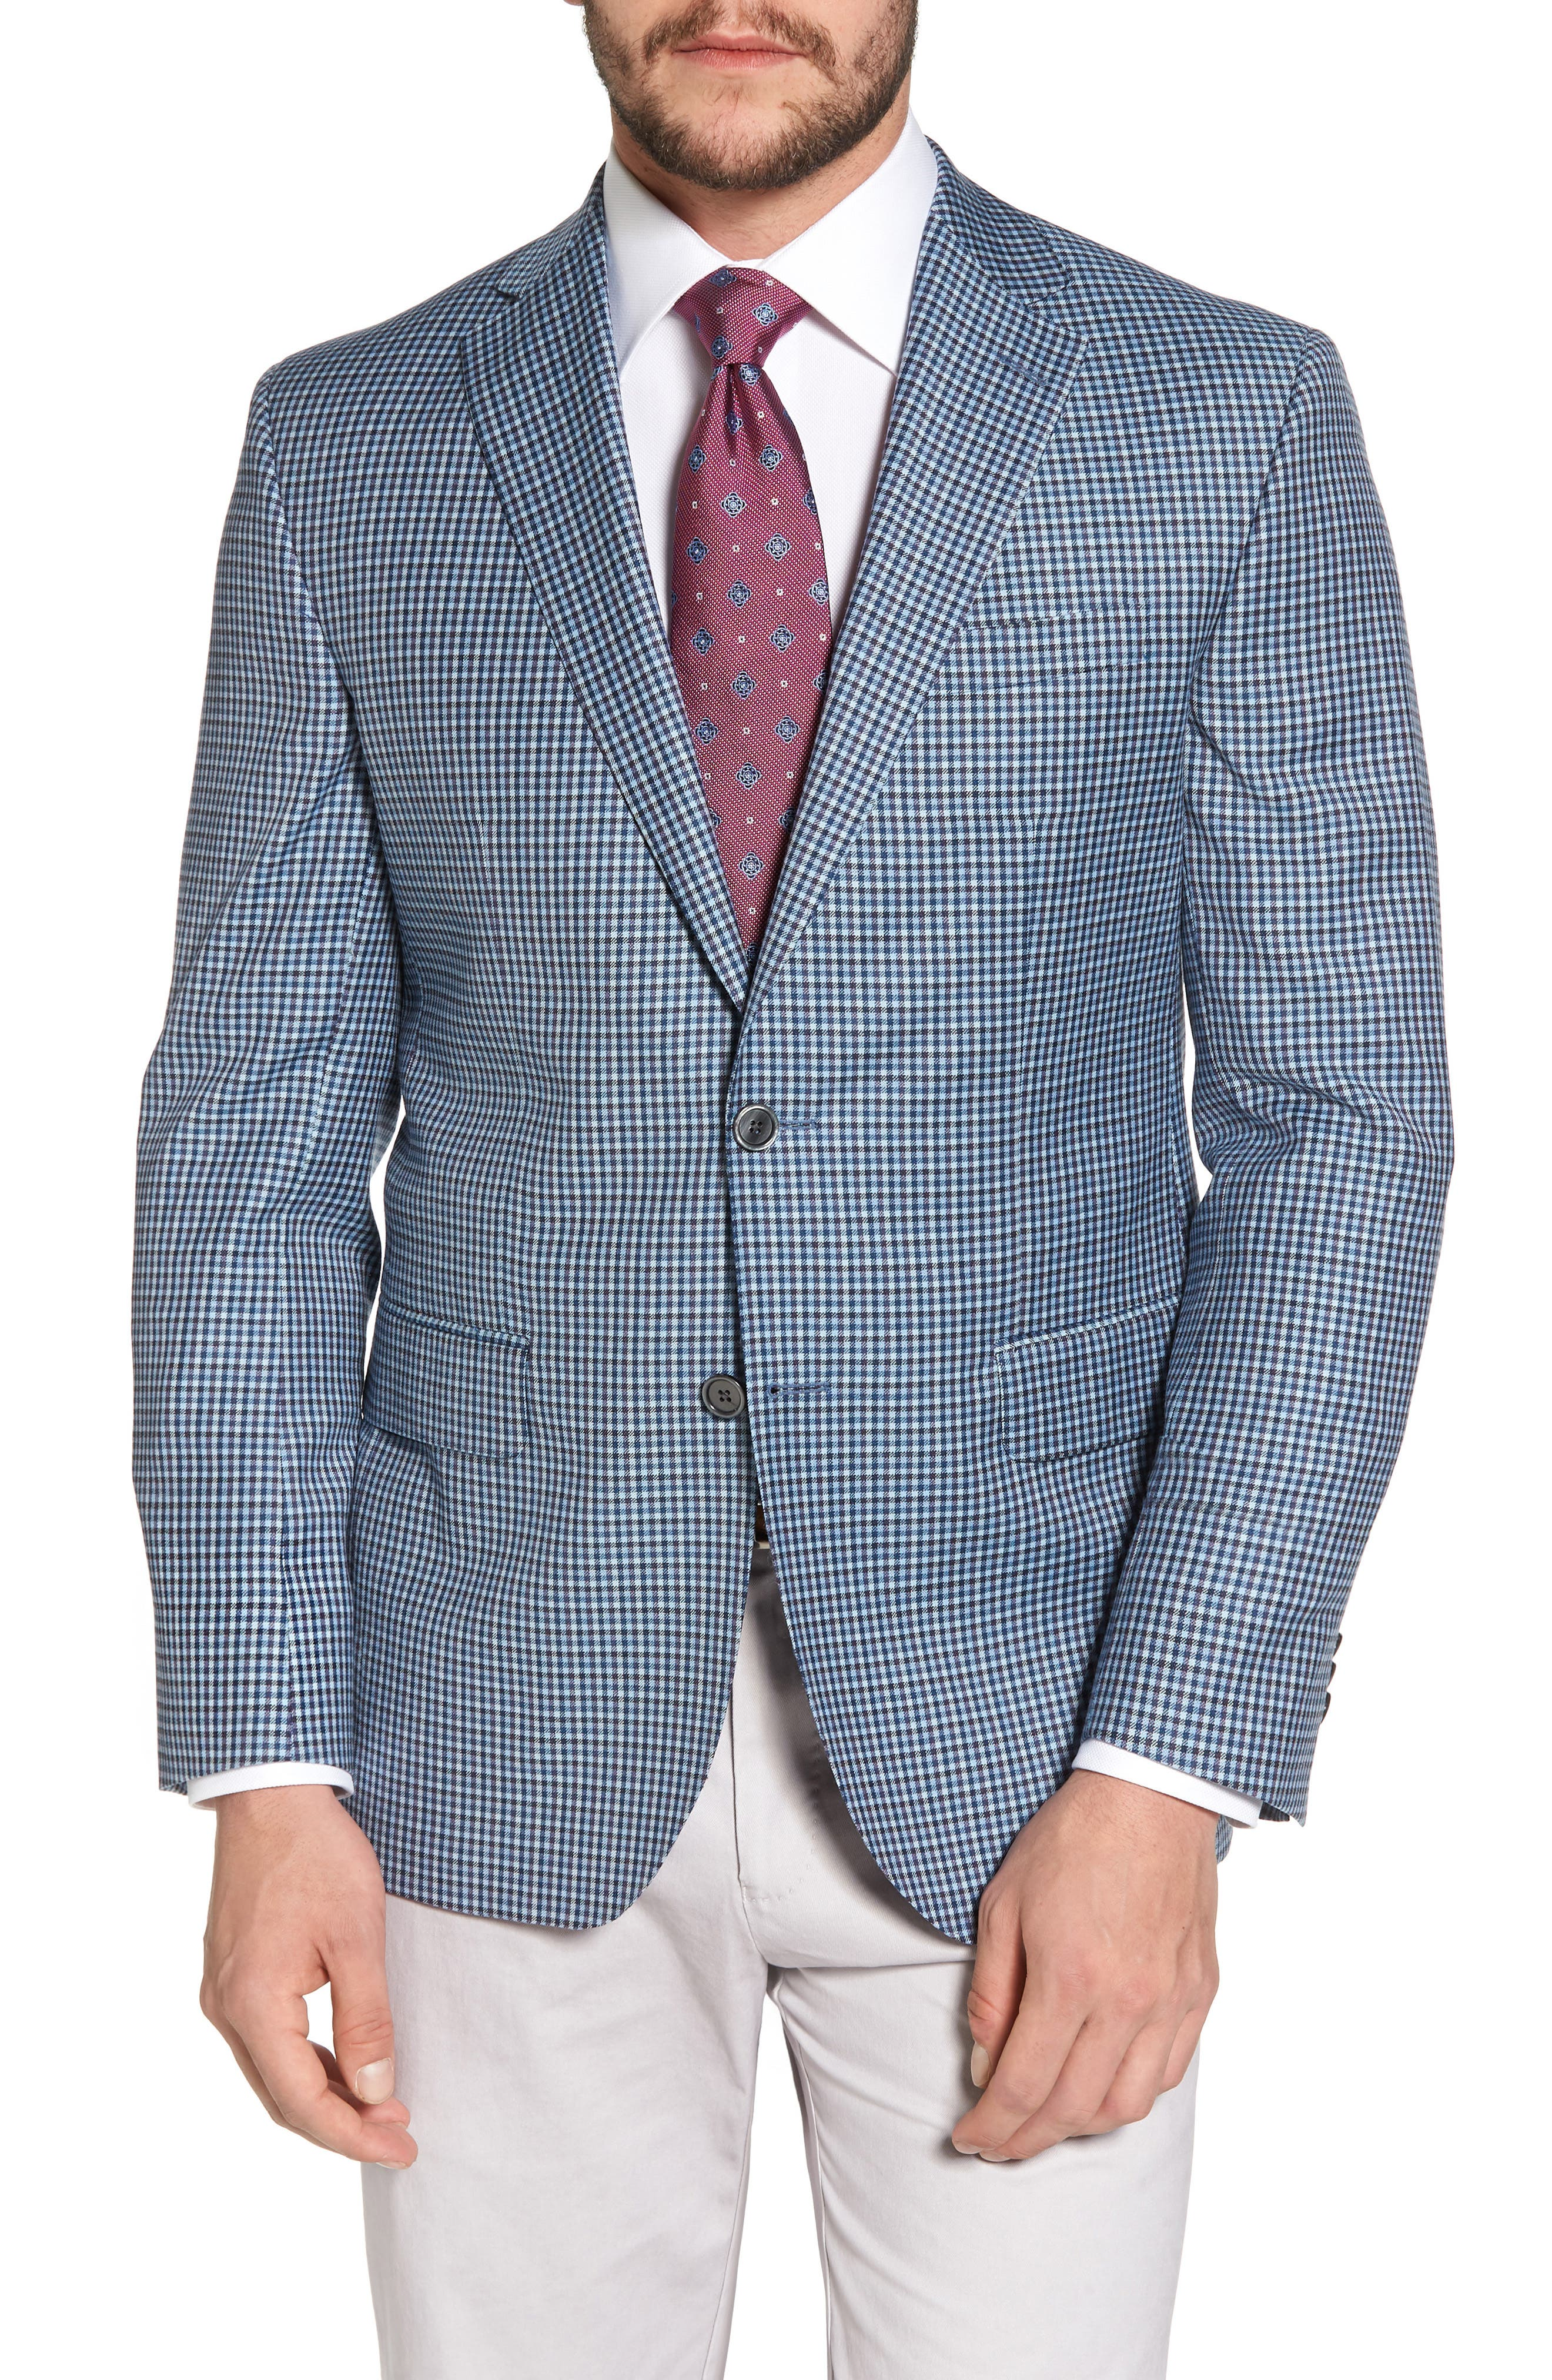 Arnold Classic Fit Check Wool Sport Coat,                         Main,                         color, Blue